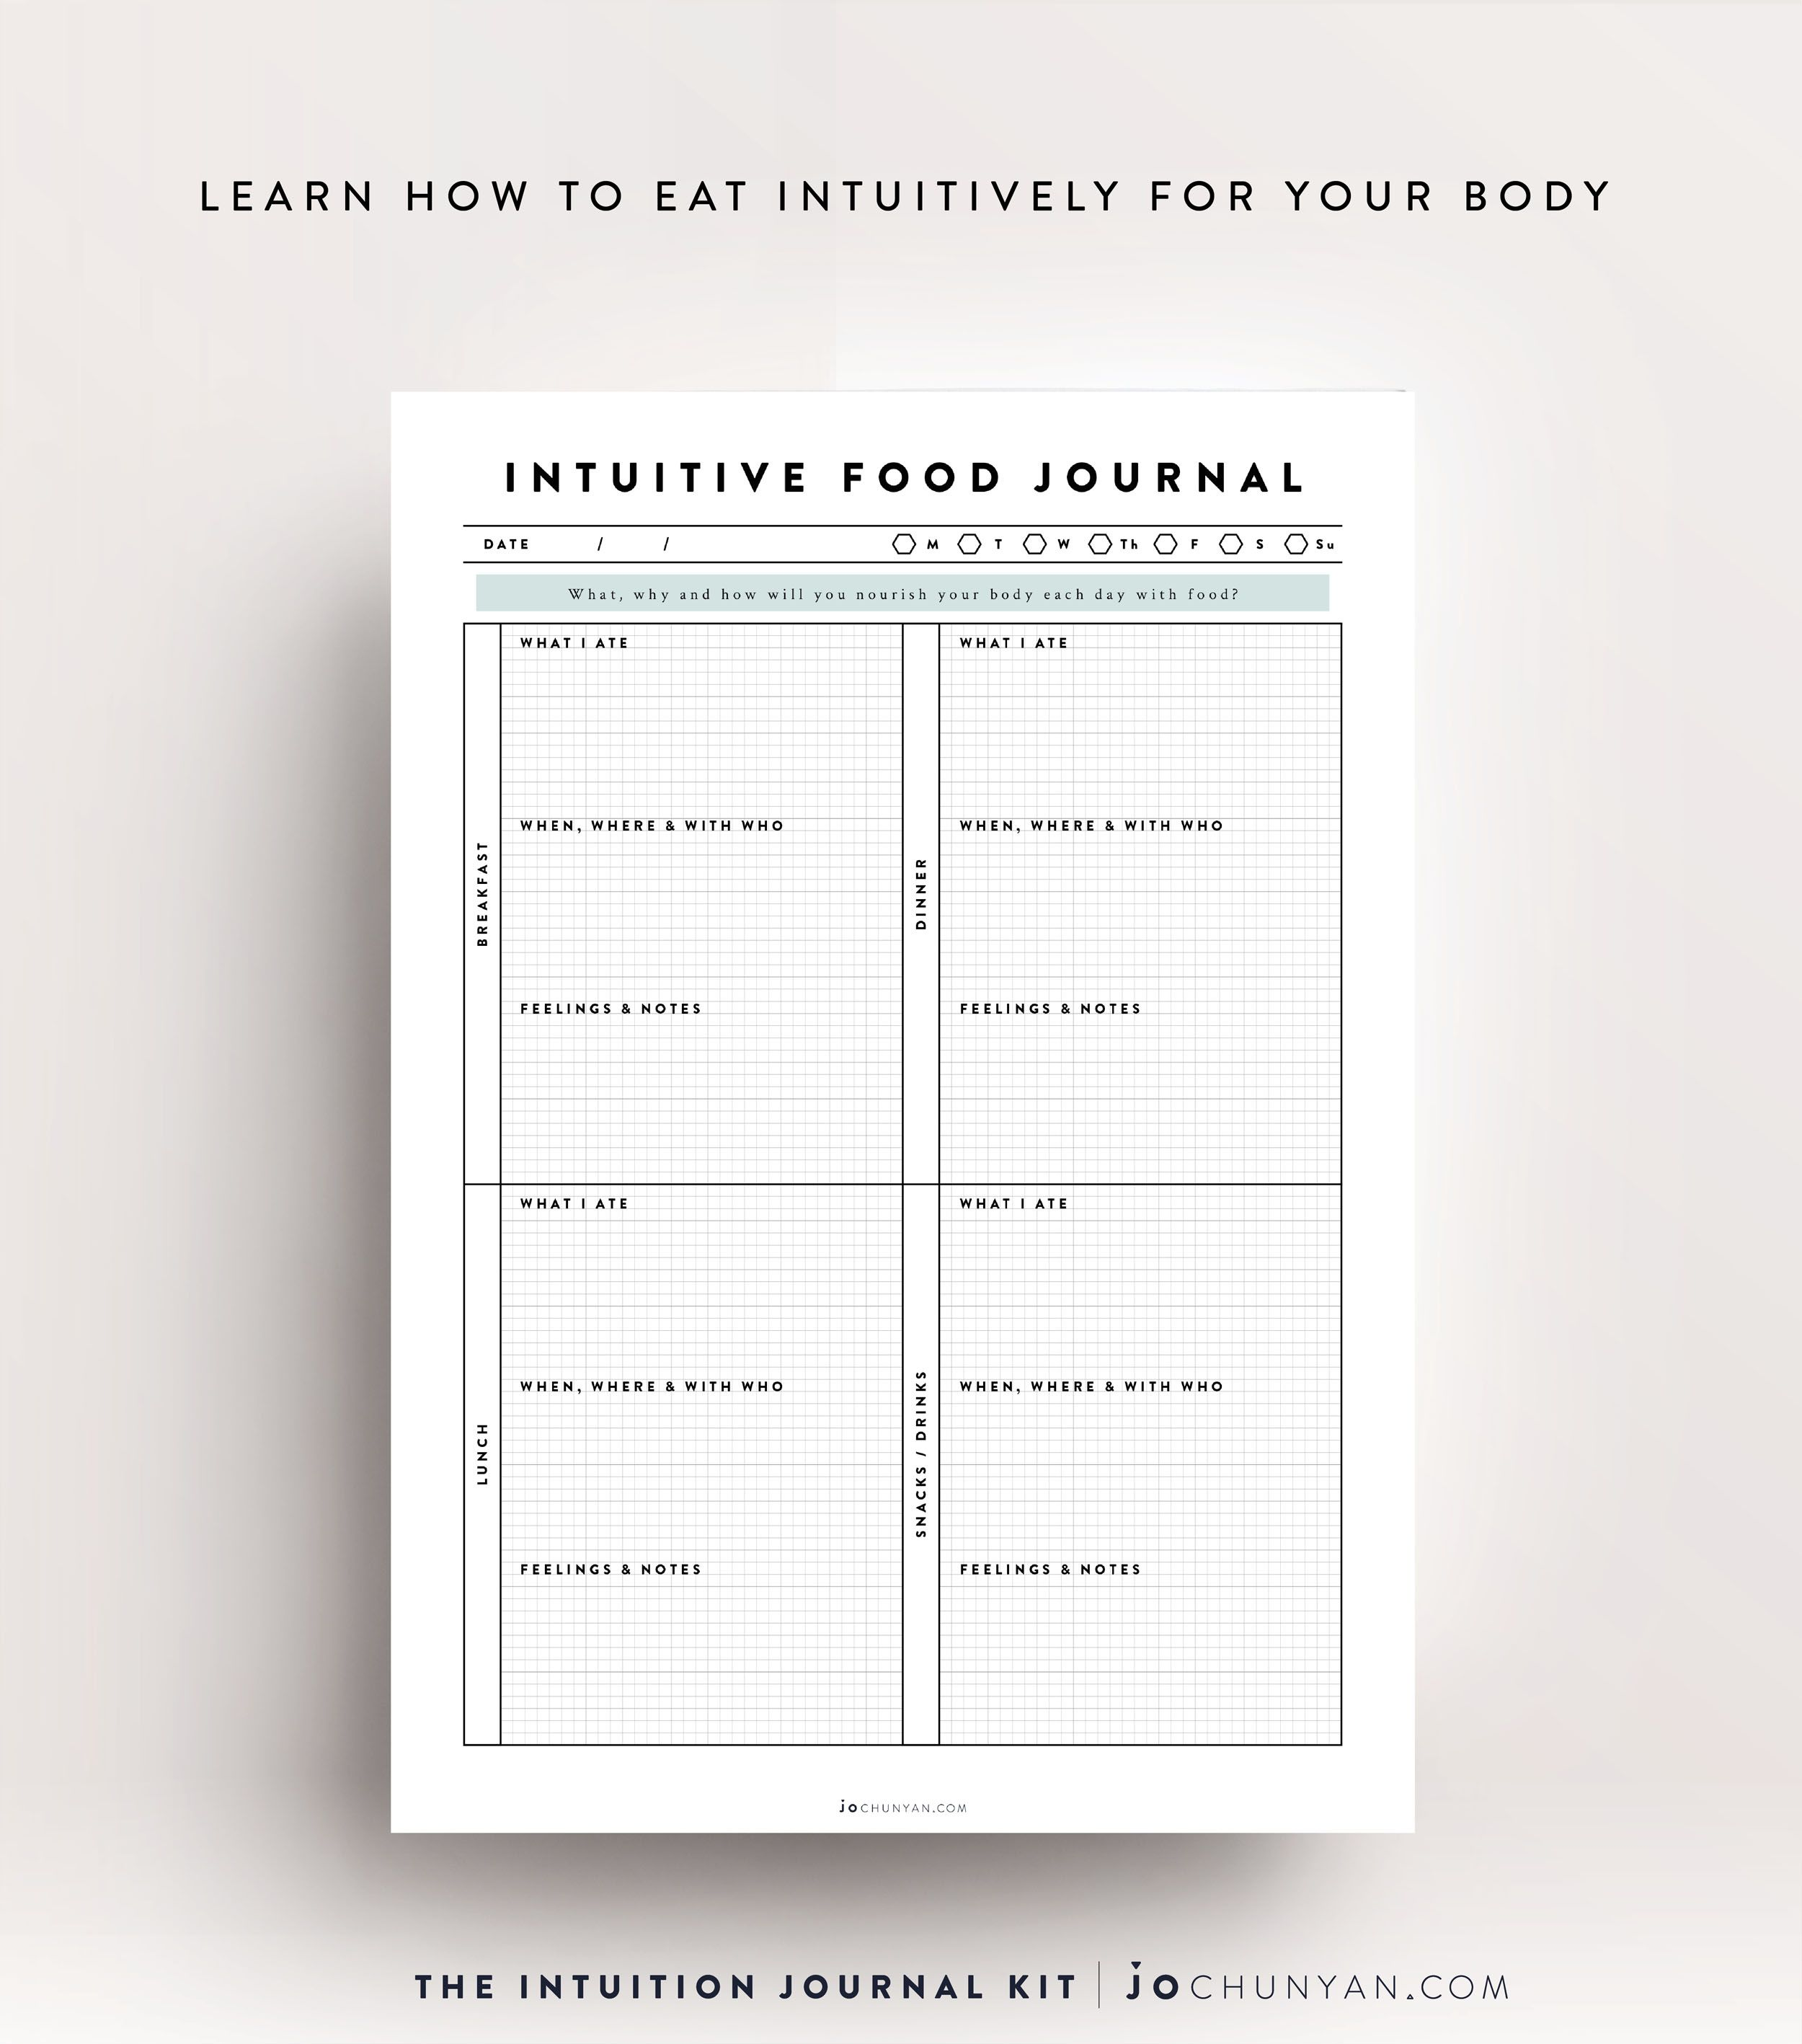 Intuition Journal Kit Learn How To Eat Intuitively And